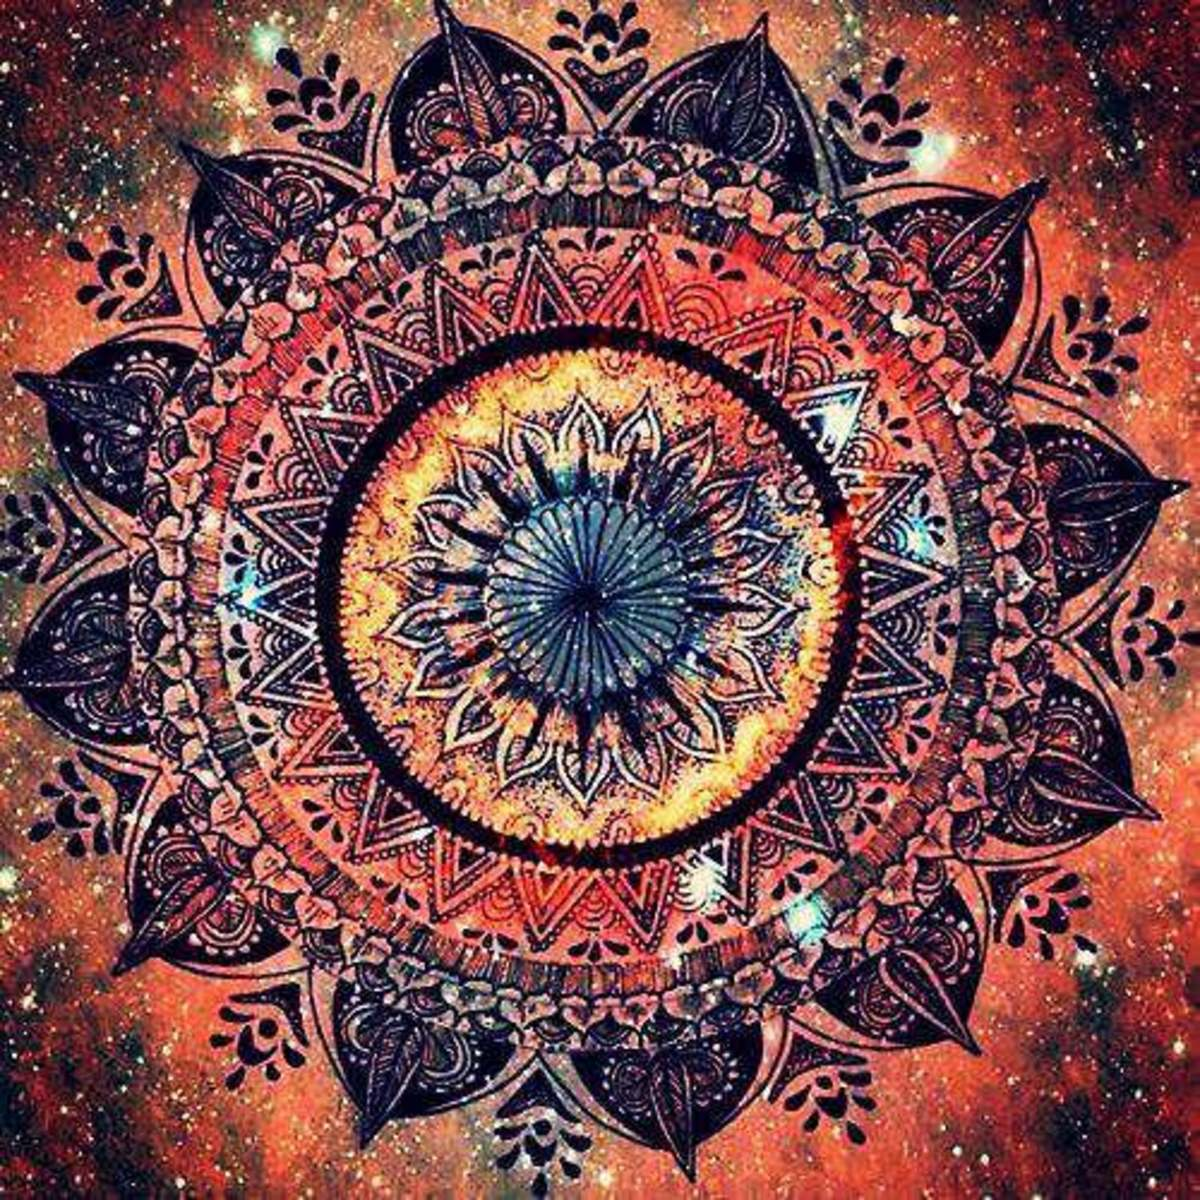 A Mandala in the Cosmos